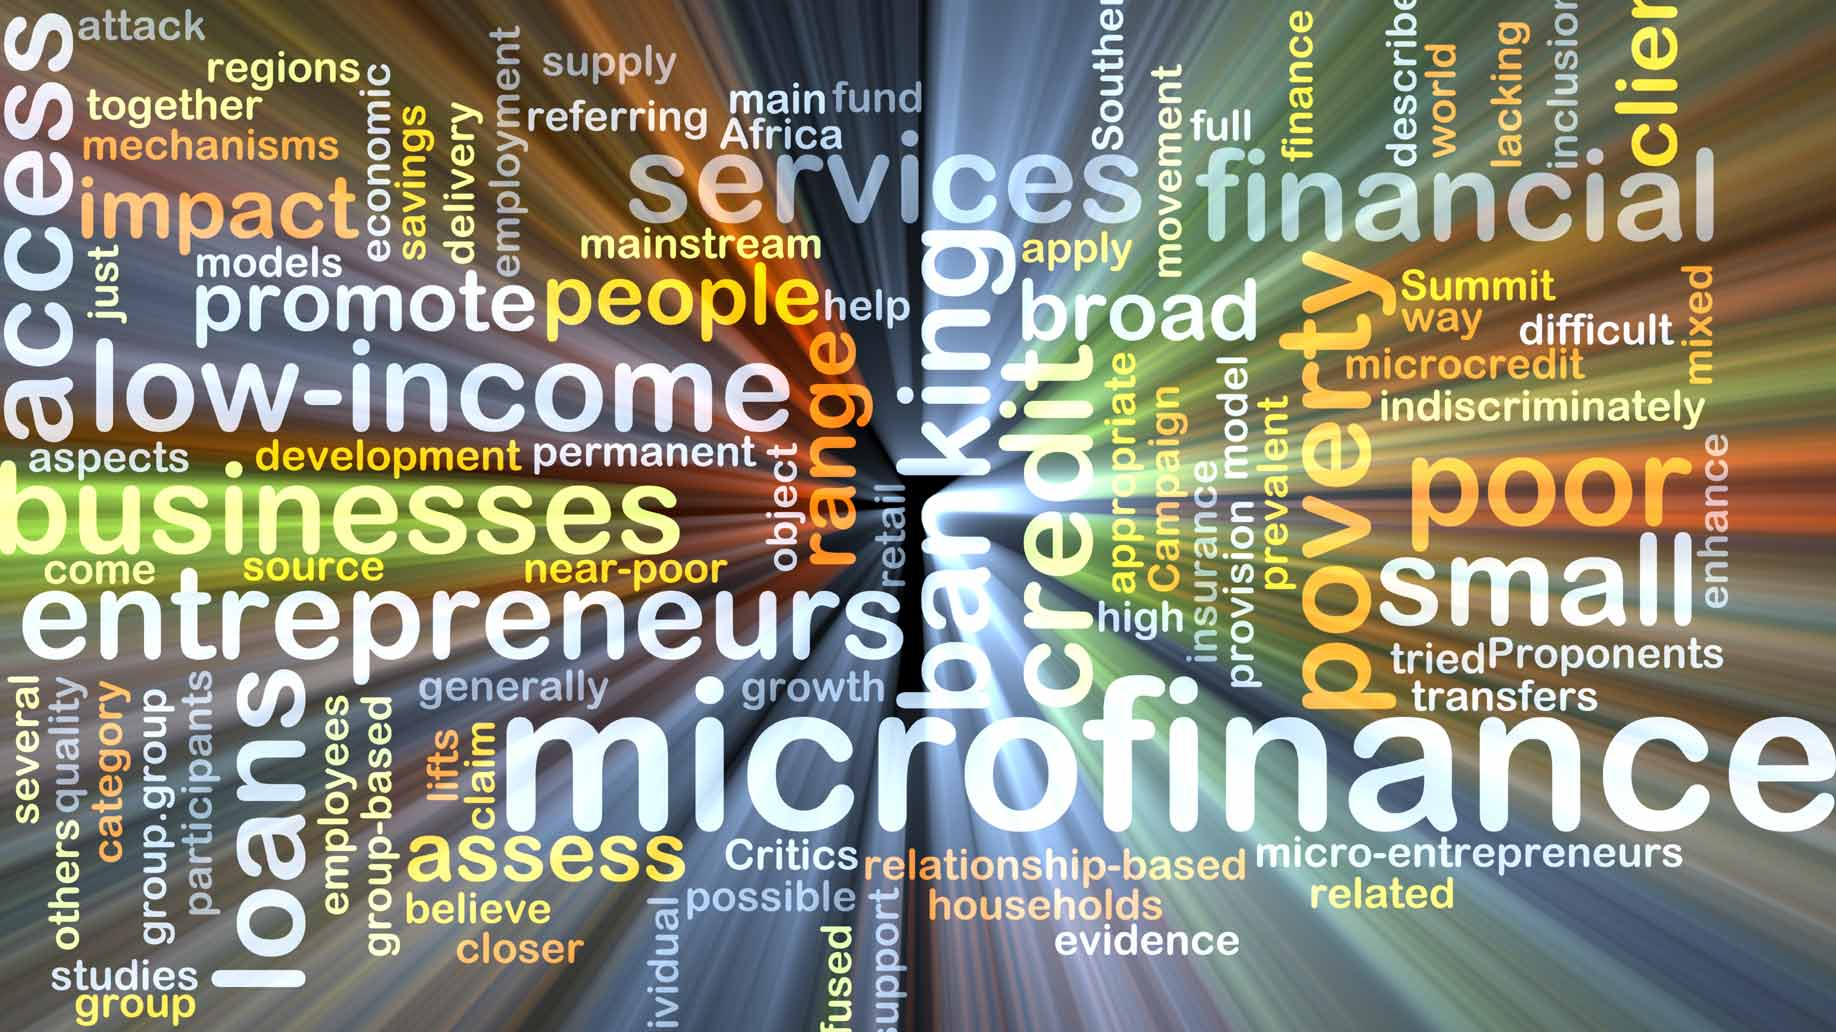 microfinance word cloud